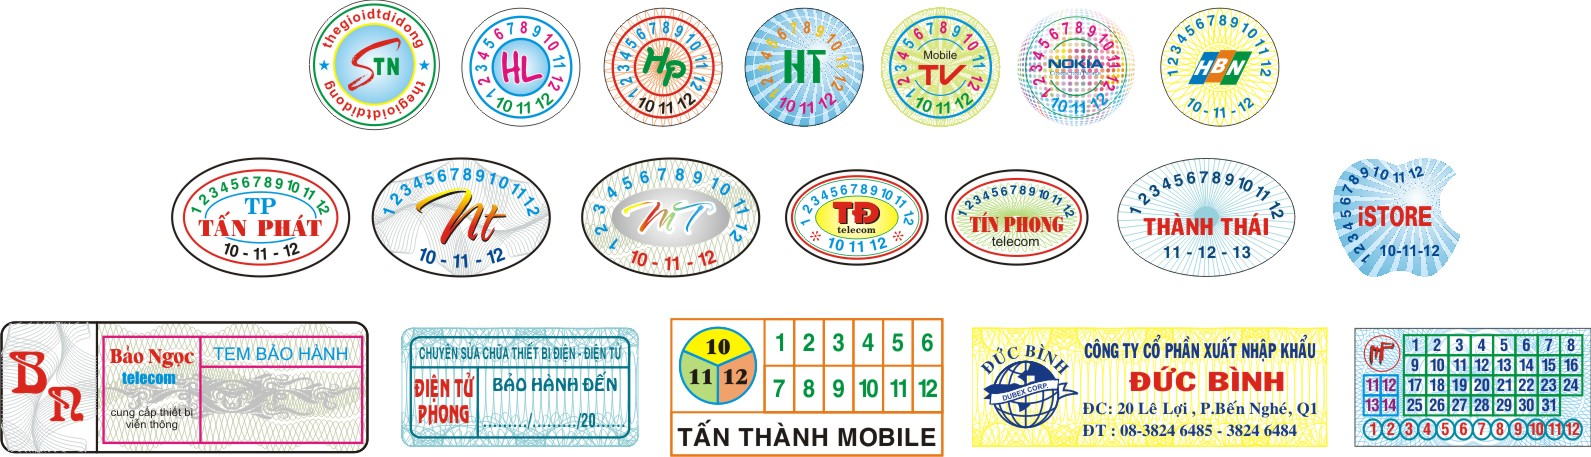 in decal chống giả